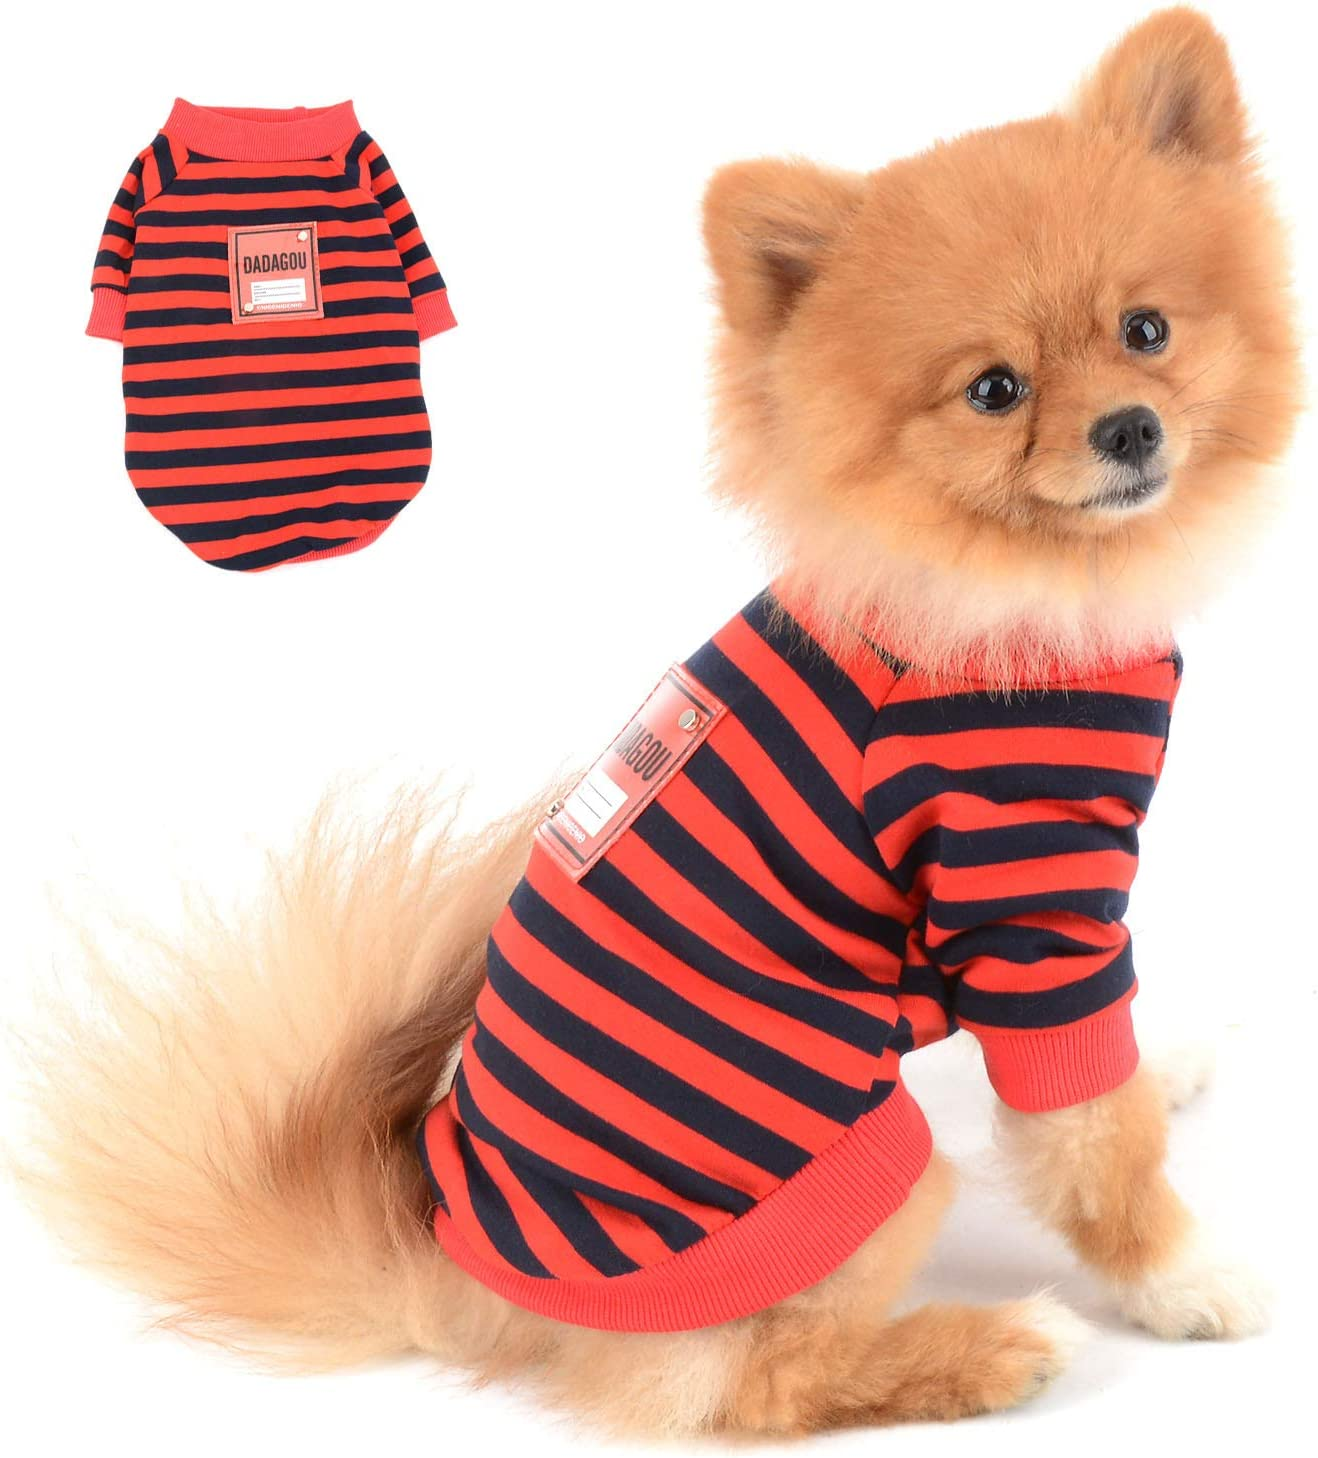 PAIDEFUL Clothes for Small Dogs Boy Girl Summer Striped Puppy T Shirt Vest Breathable 100/% Cotton Tee Sleeveless Chihuahua Yorkshire,Red,Size S